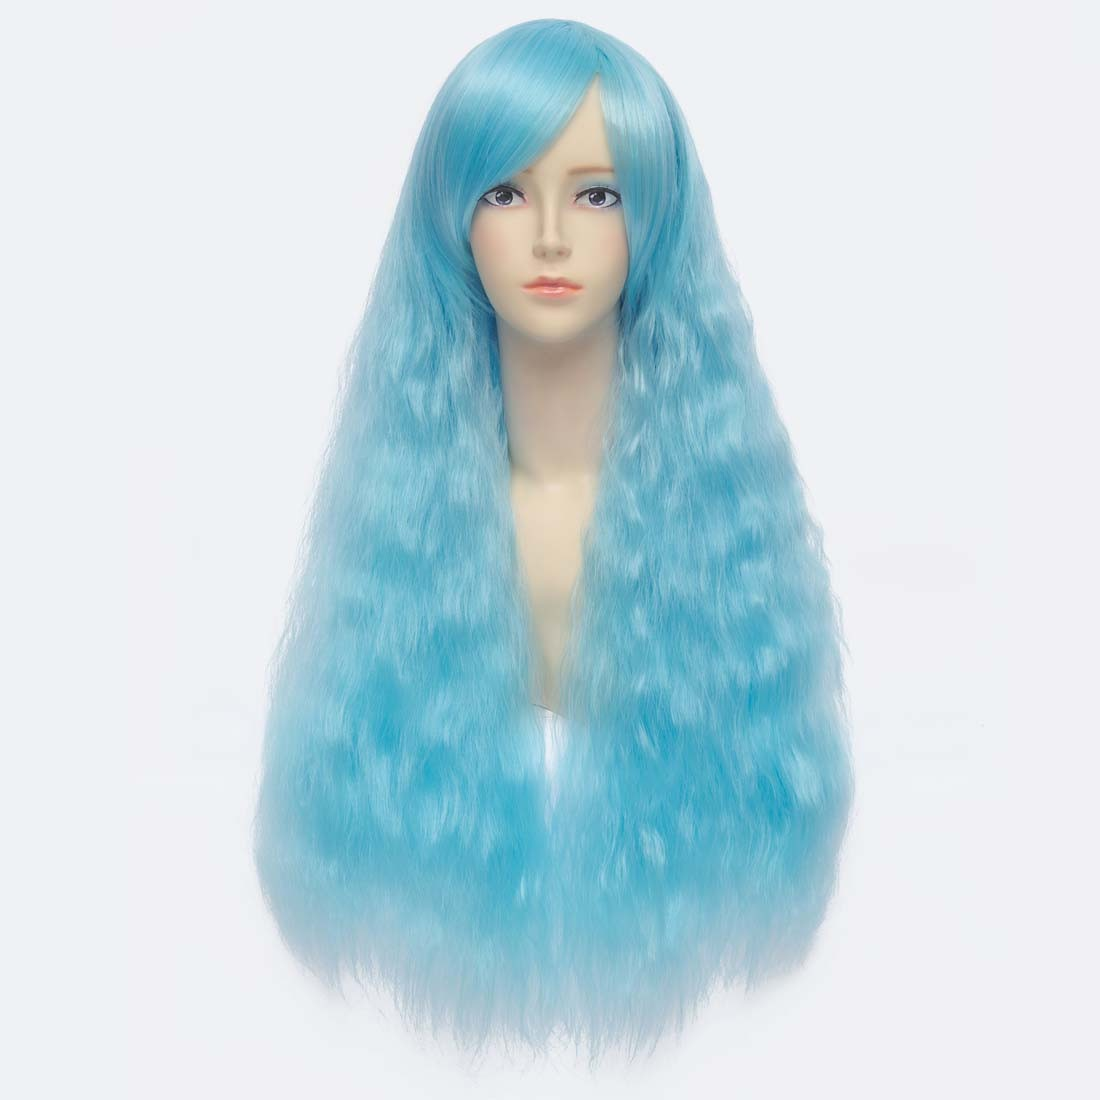 65cm New Fashion Blue Long Wavy Curly Synthetic Anime Full Cosplay Costume Wig